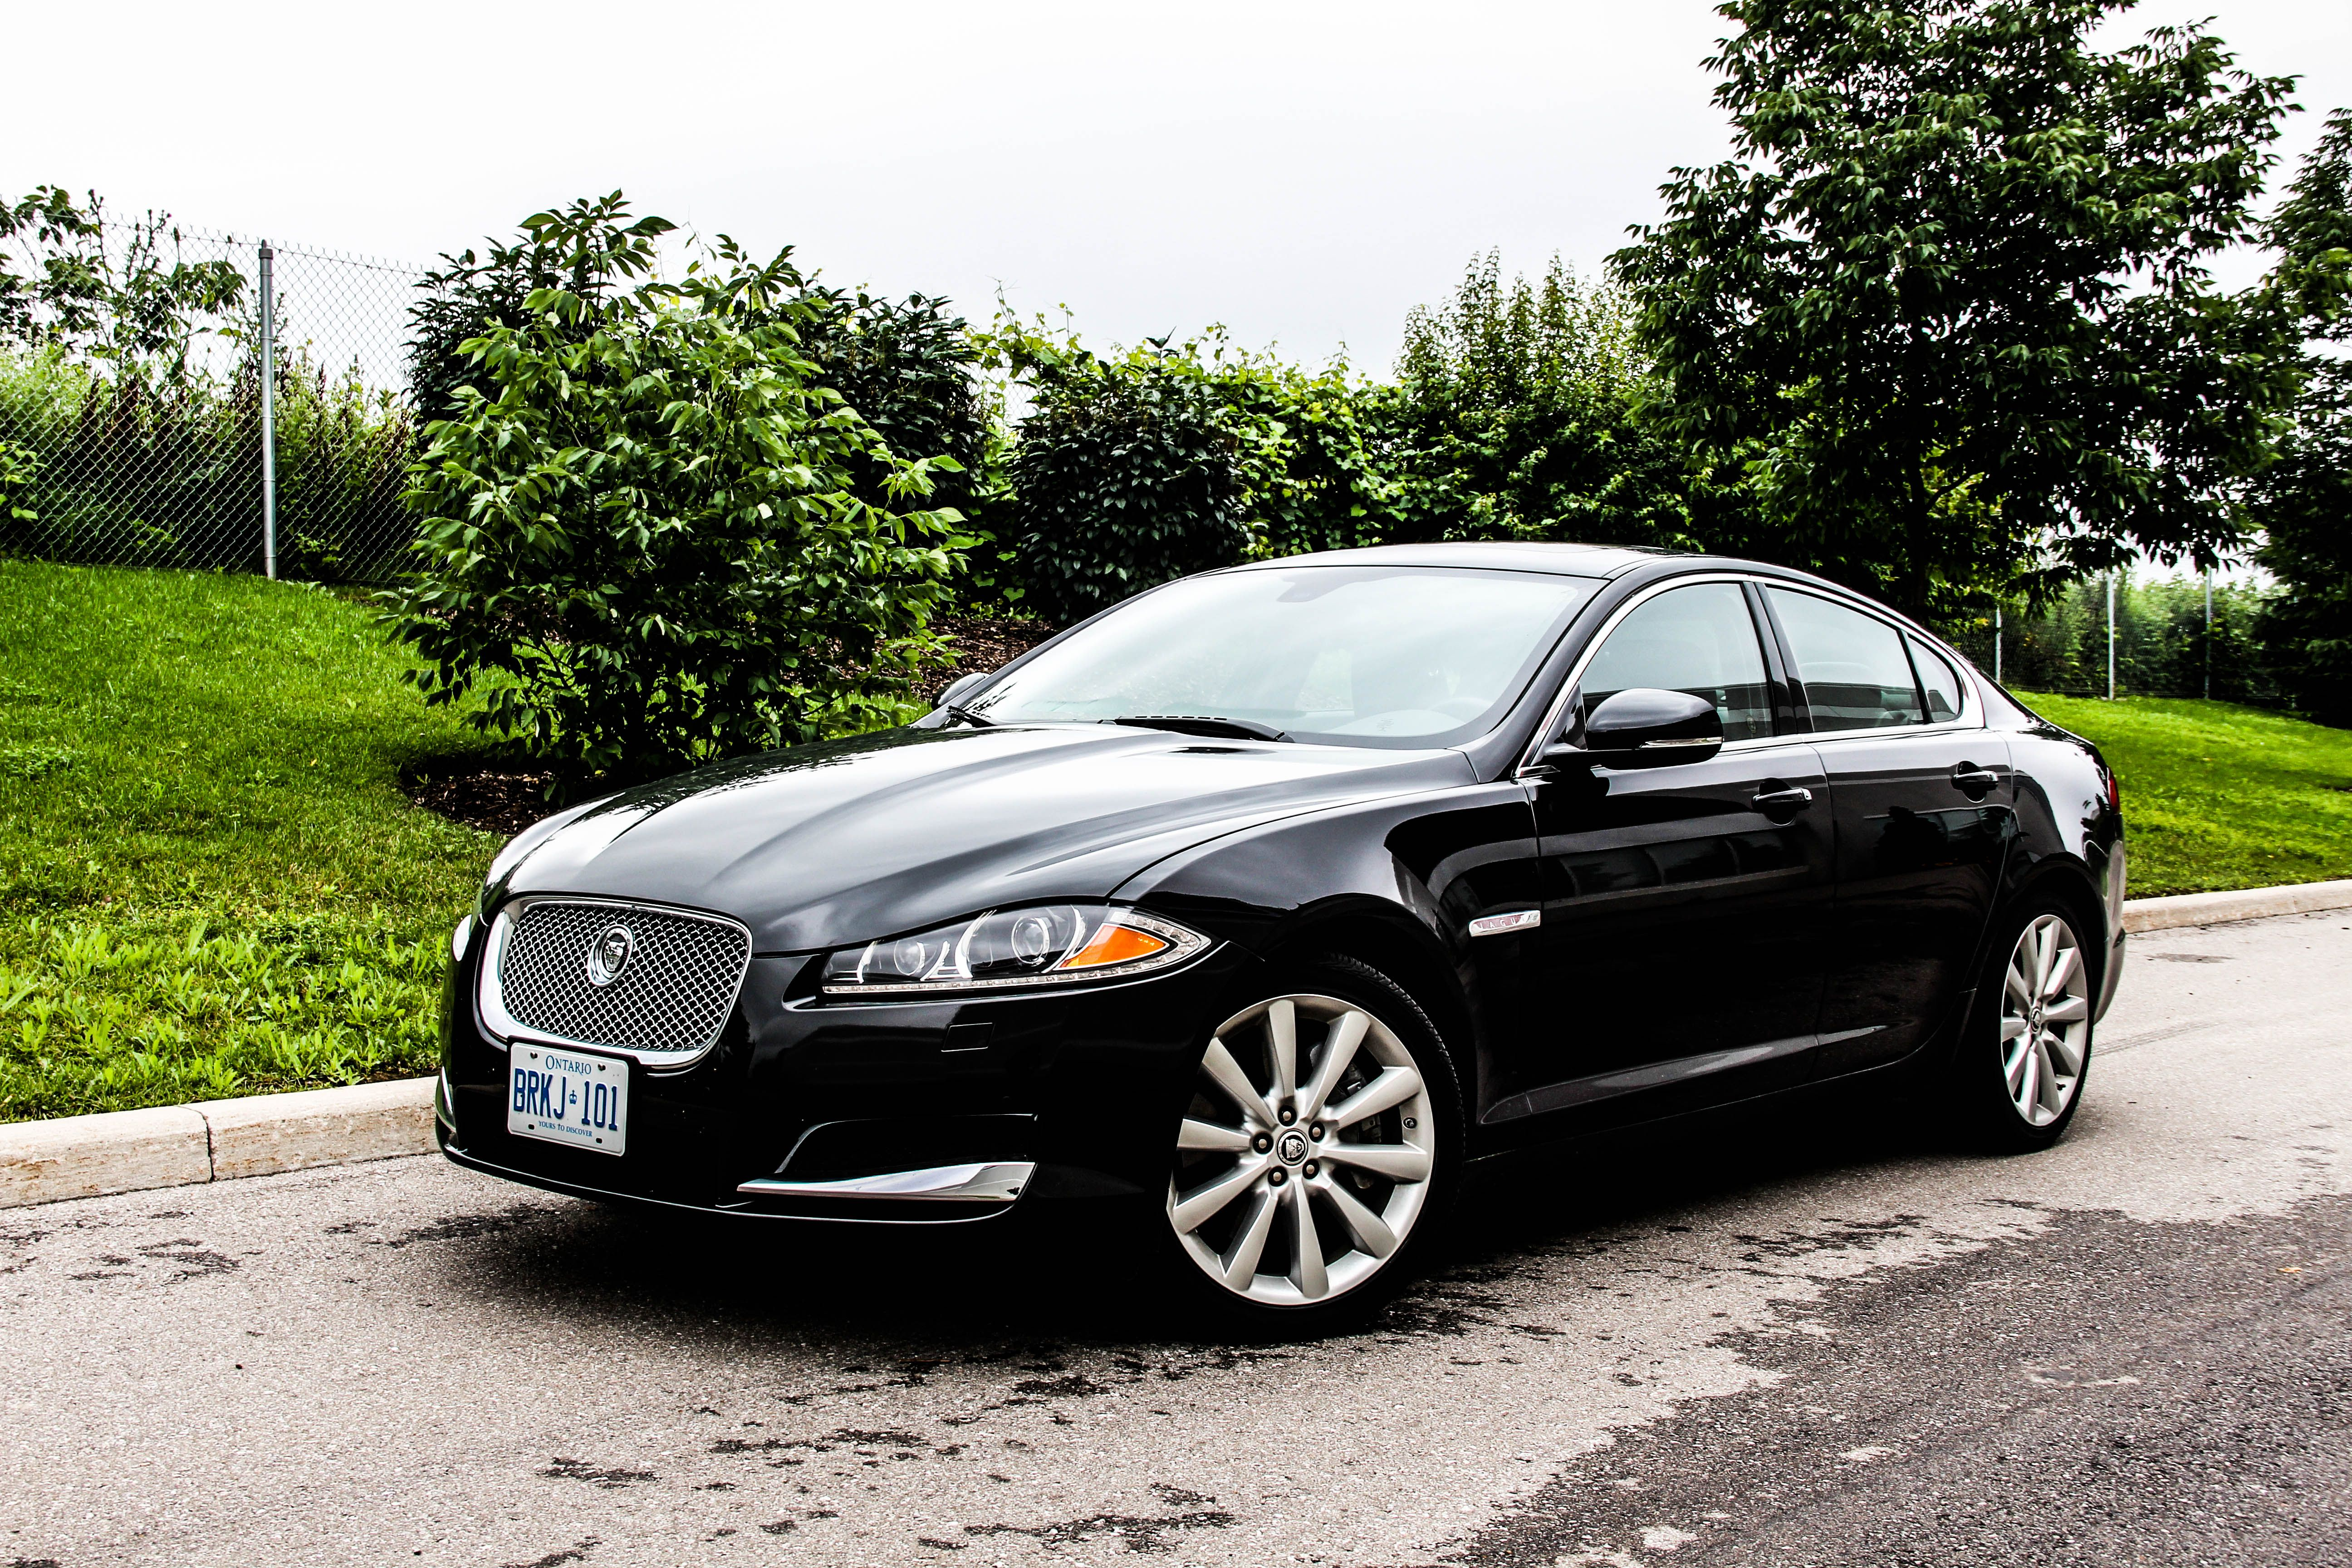 teamvossen awd on xf jaguar sale cvt for submissions s pin customer